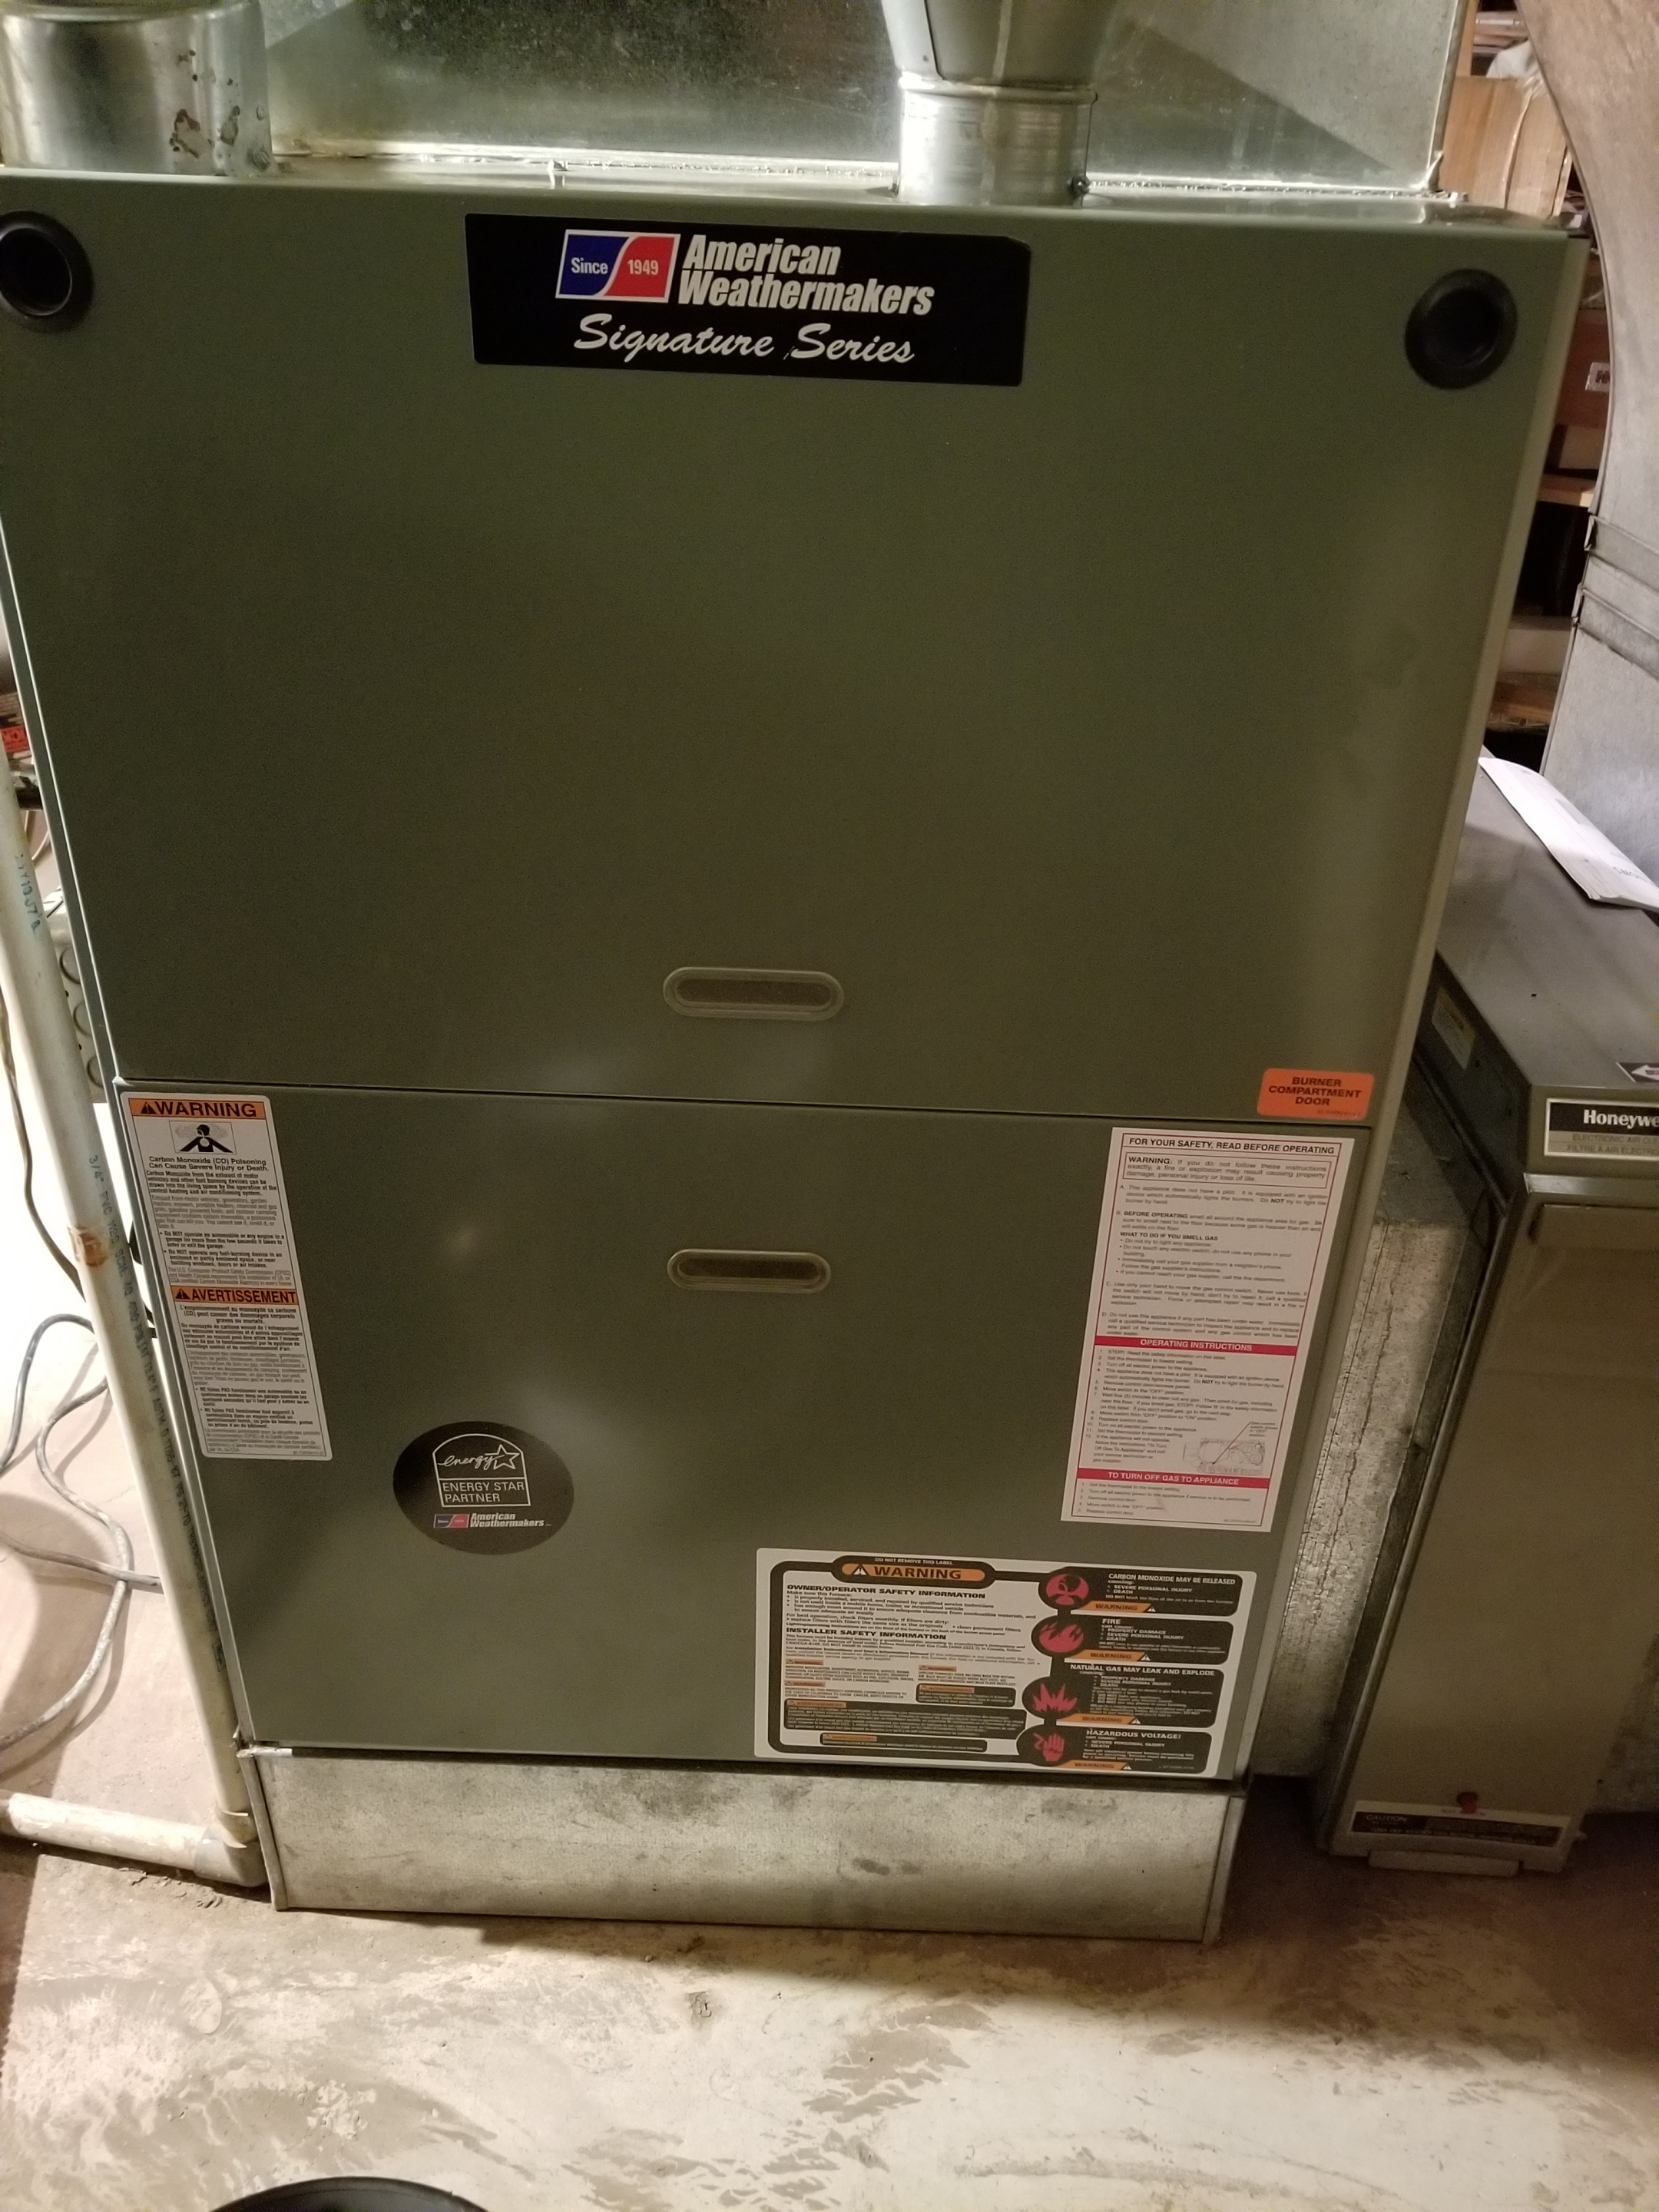 Repaired the furnace blower motor and made adjustments to improve the overall efficiency and life expectancy of the equipment